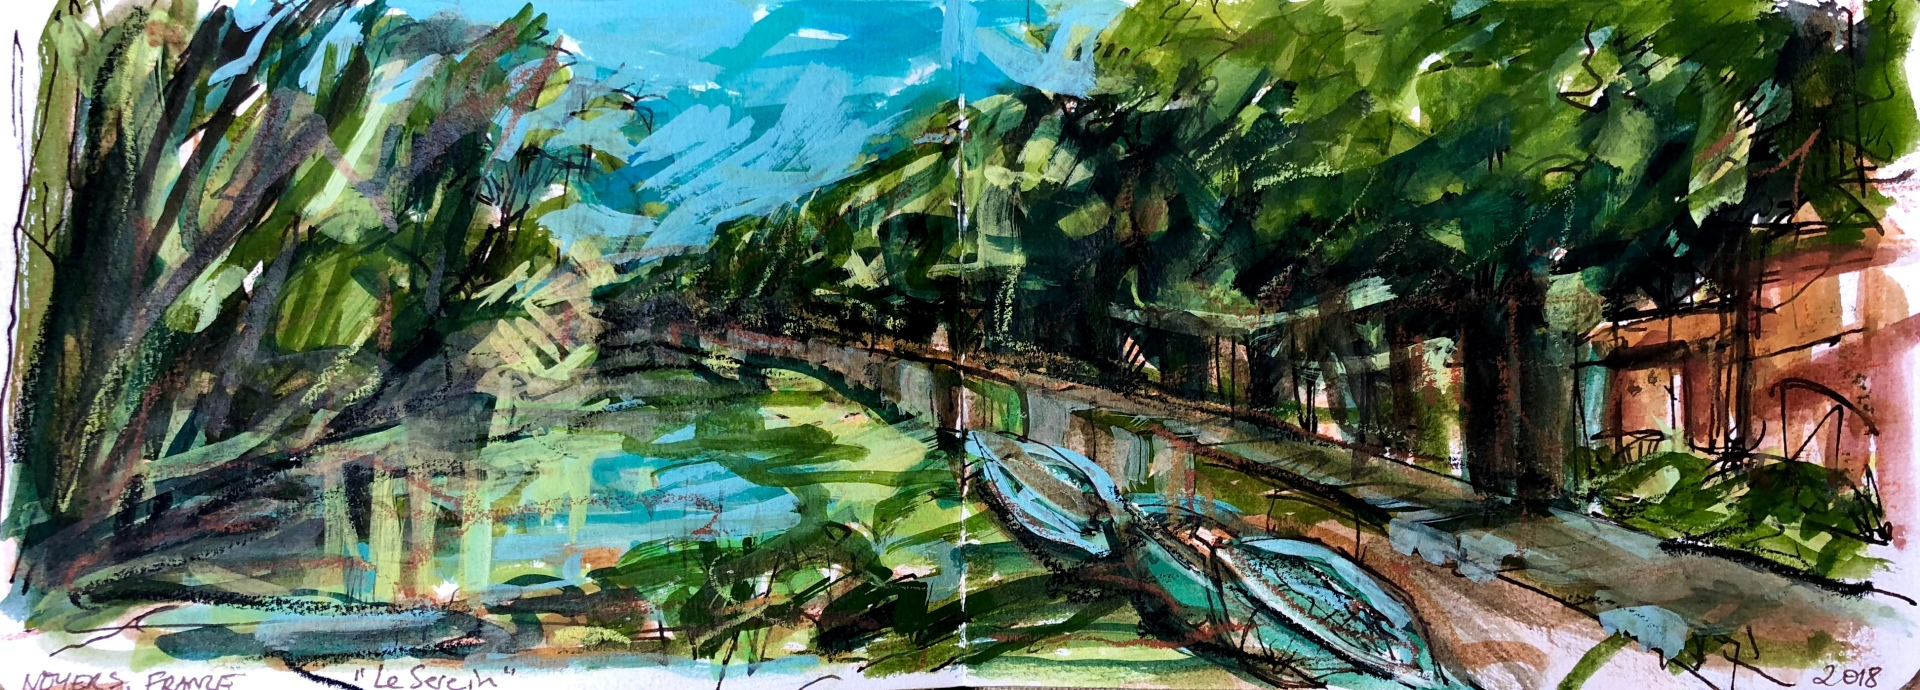 Sketch for Le Serein River boats